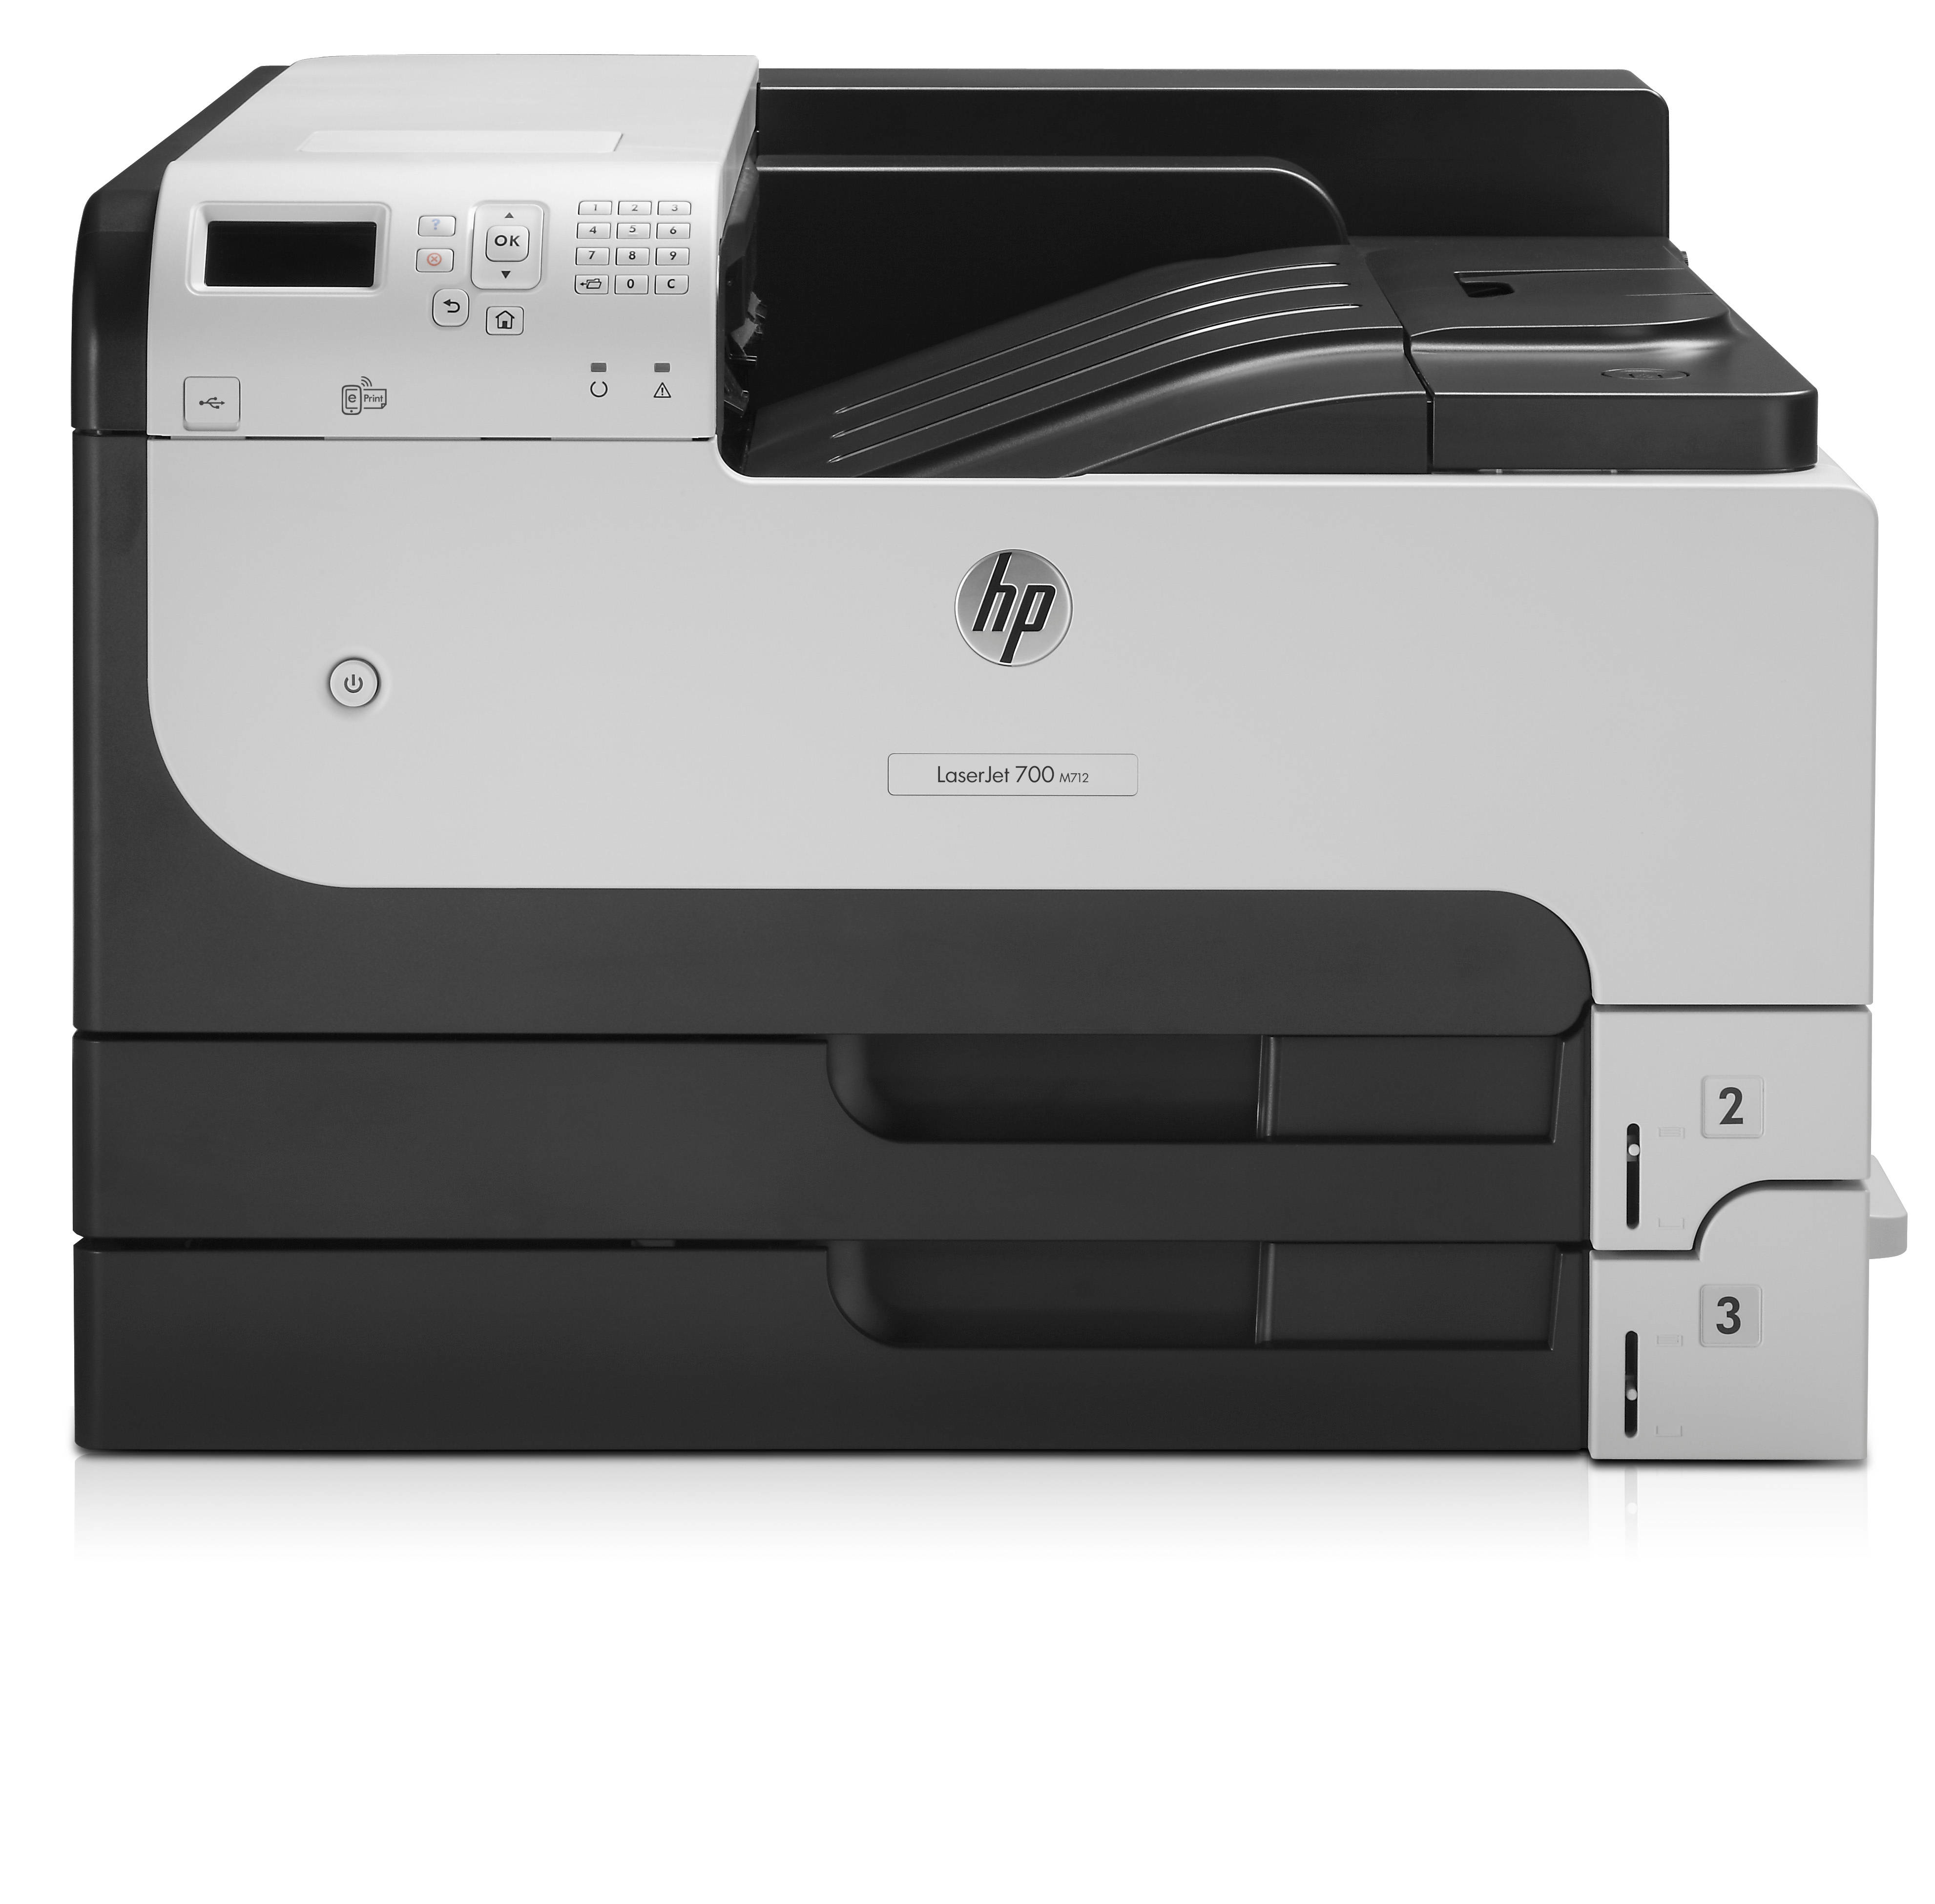 CF236A#B19 Hp HP LaserJet Enterprise 700 M712dn, Print, A3, Mono, 40ppm, 512MB, 1200 X 1200dpi, 100 Sheet Multipurpose Paper Tray, 2 250 Sheet Paper Trays, 2 Hi-speed USB 2.0, 1 Hi-speed USB  - C2000